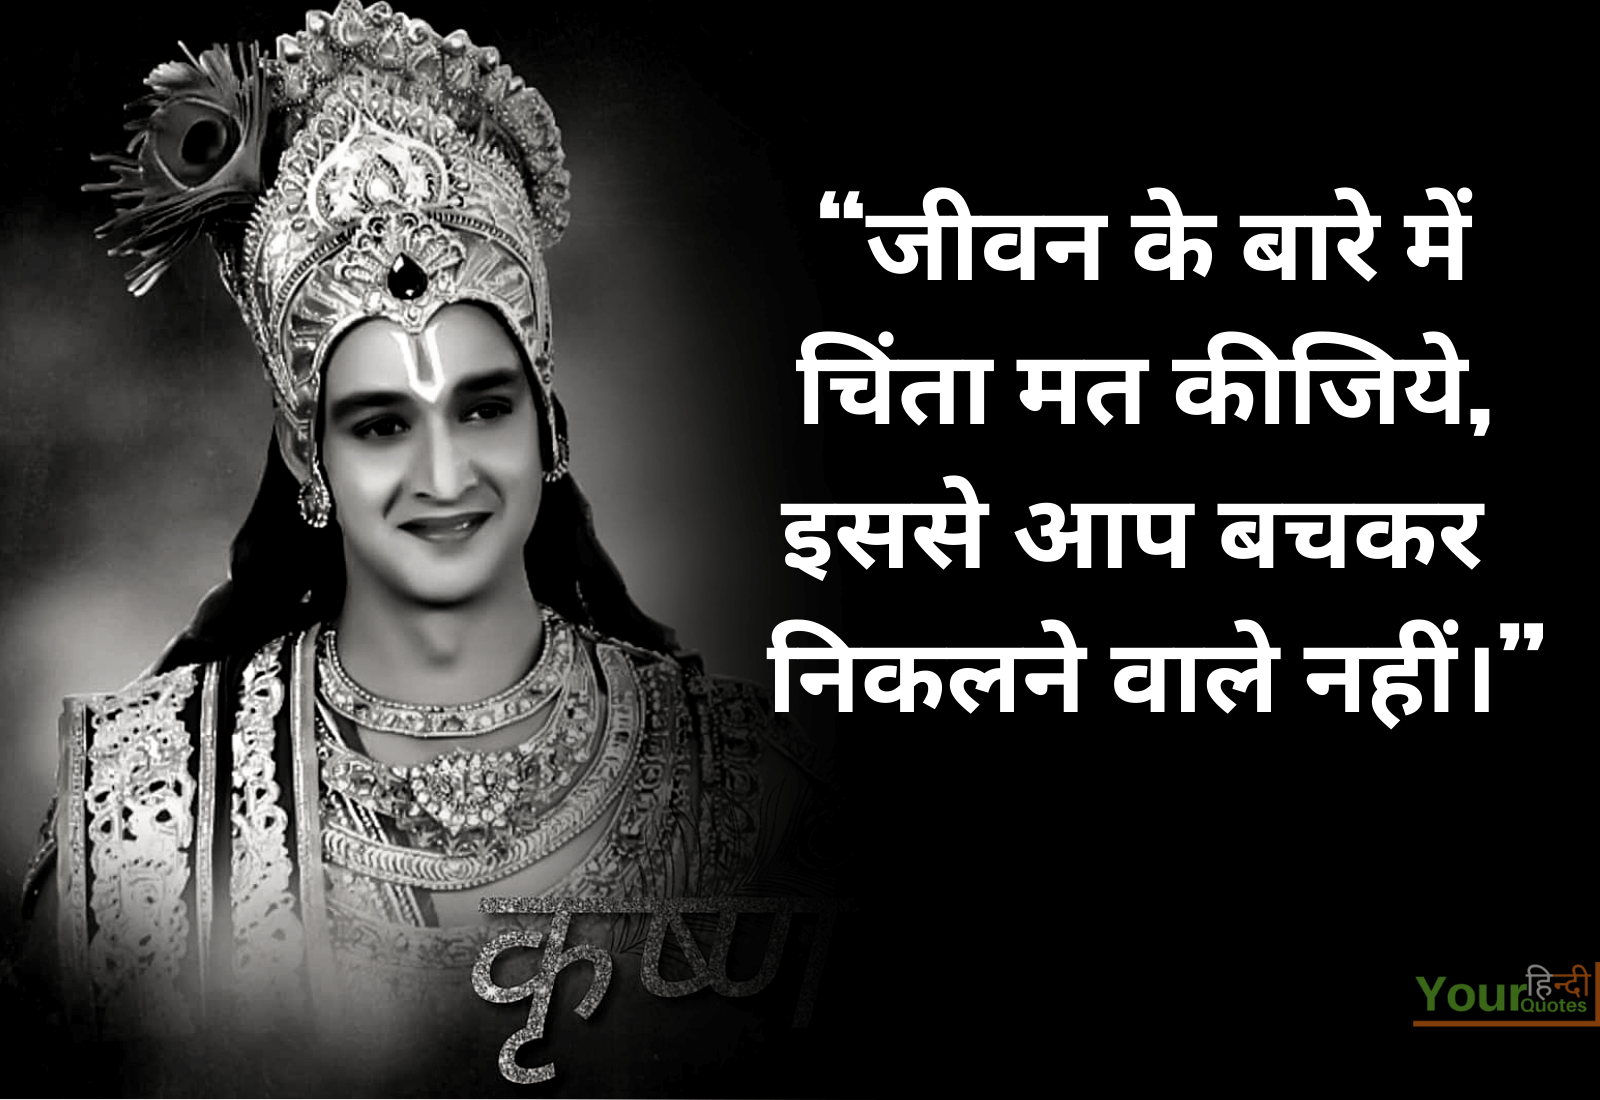 Hindi Life Quote Images